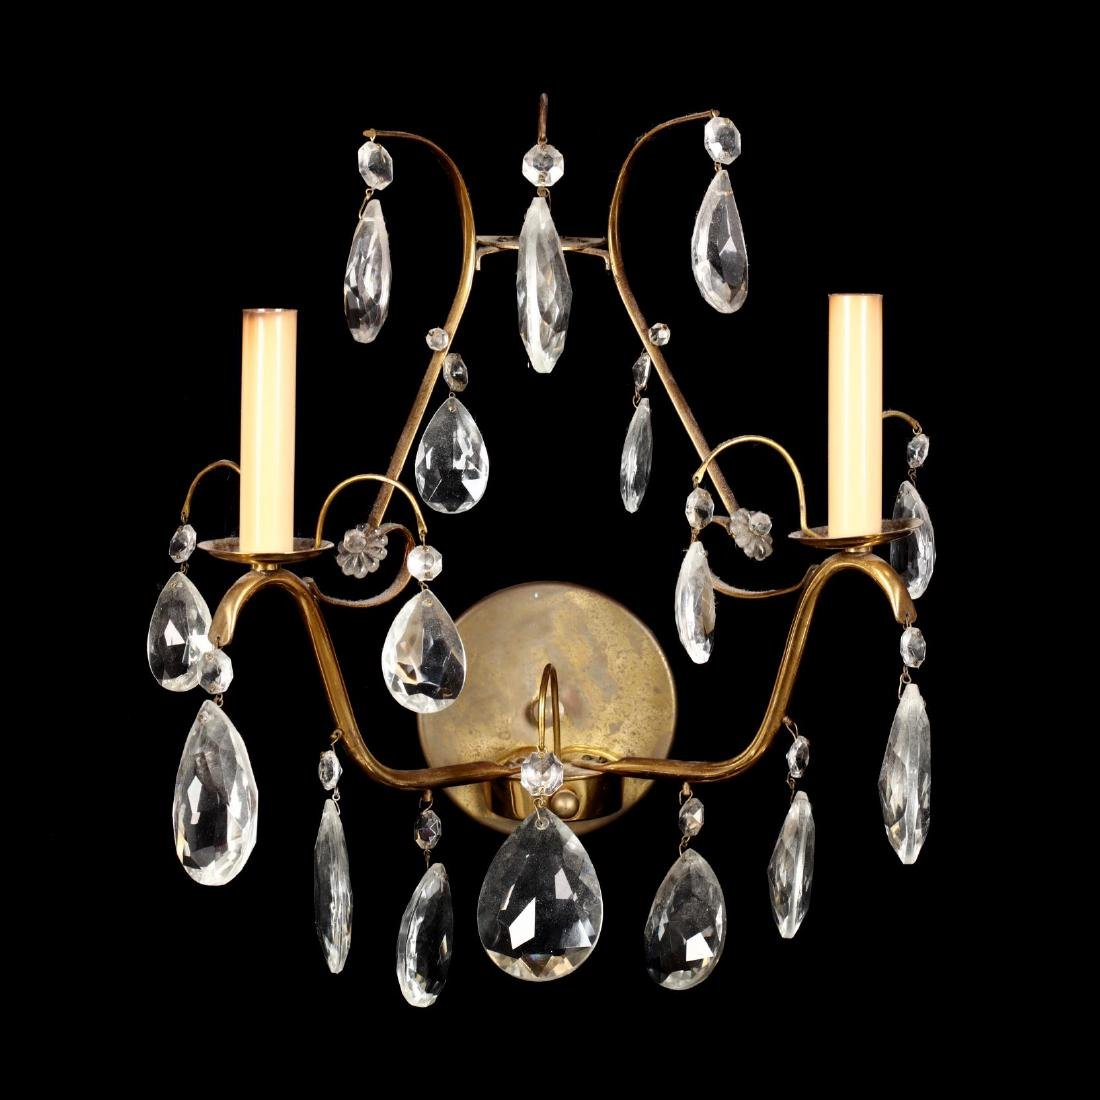 Pair of Italianate Brass and Drop Prism Wall Sconces - 5